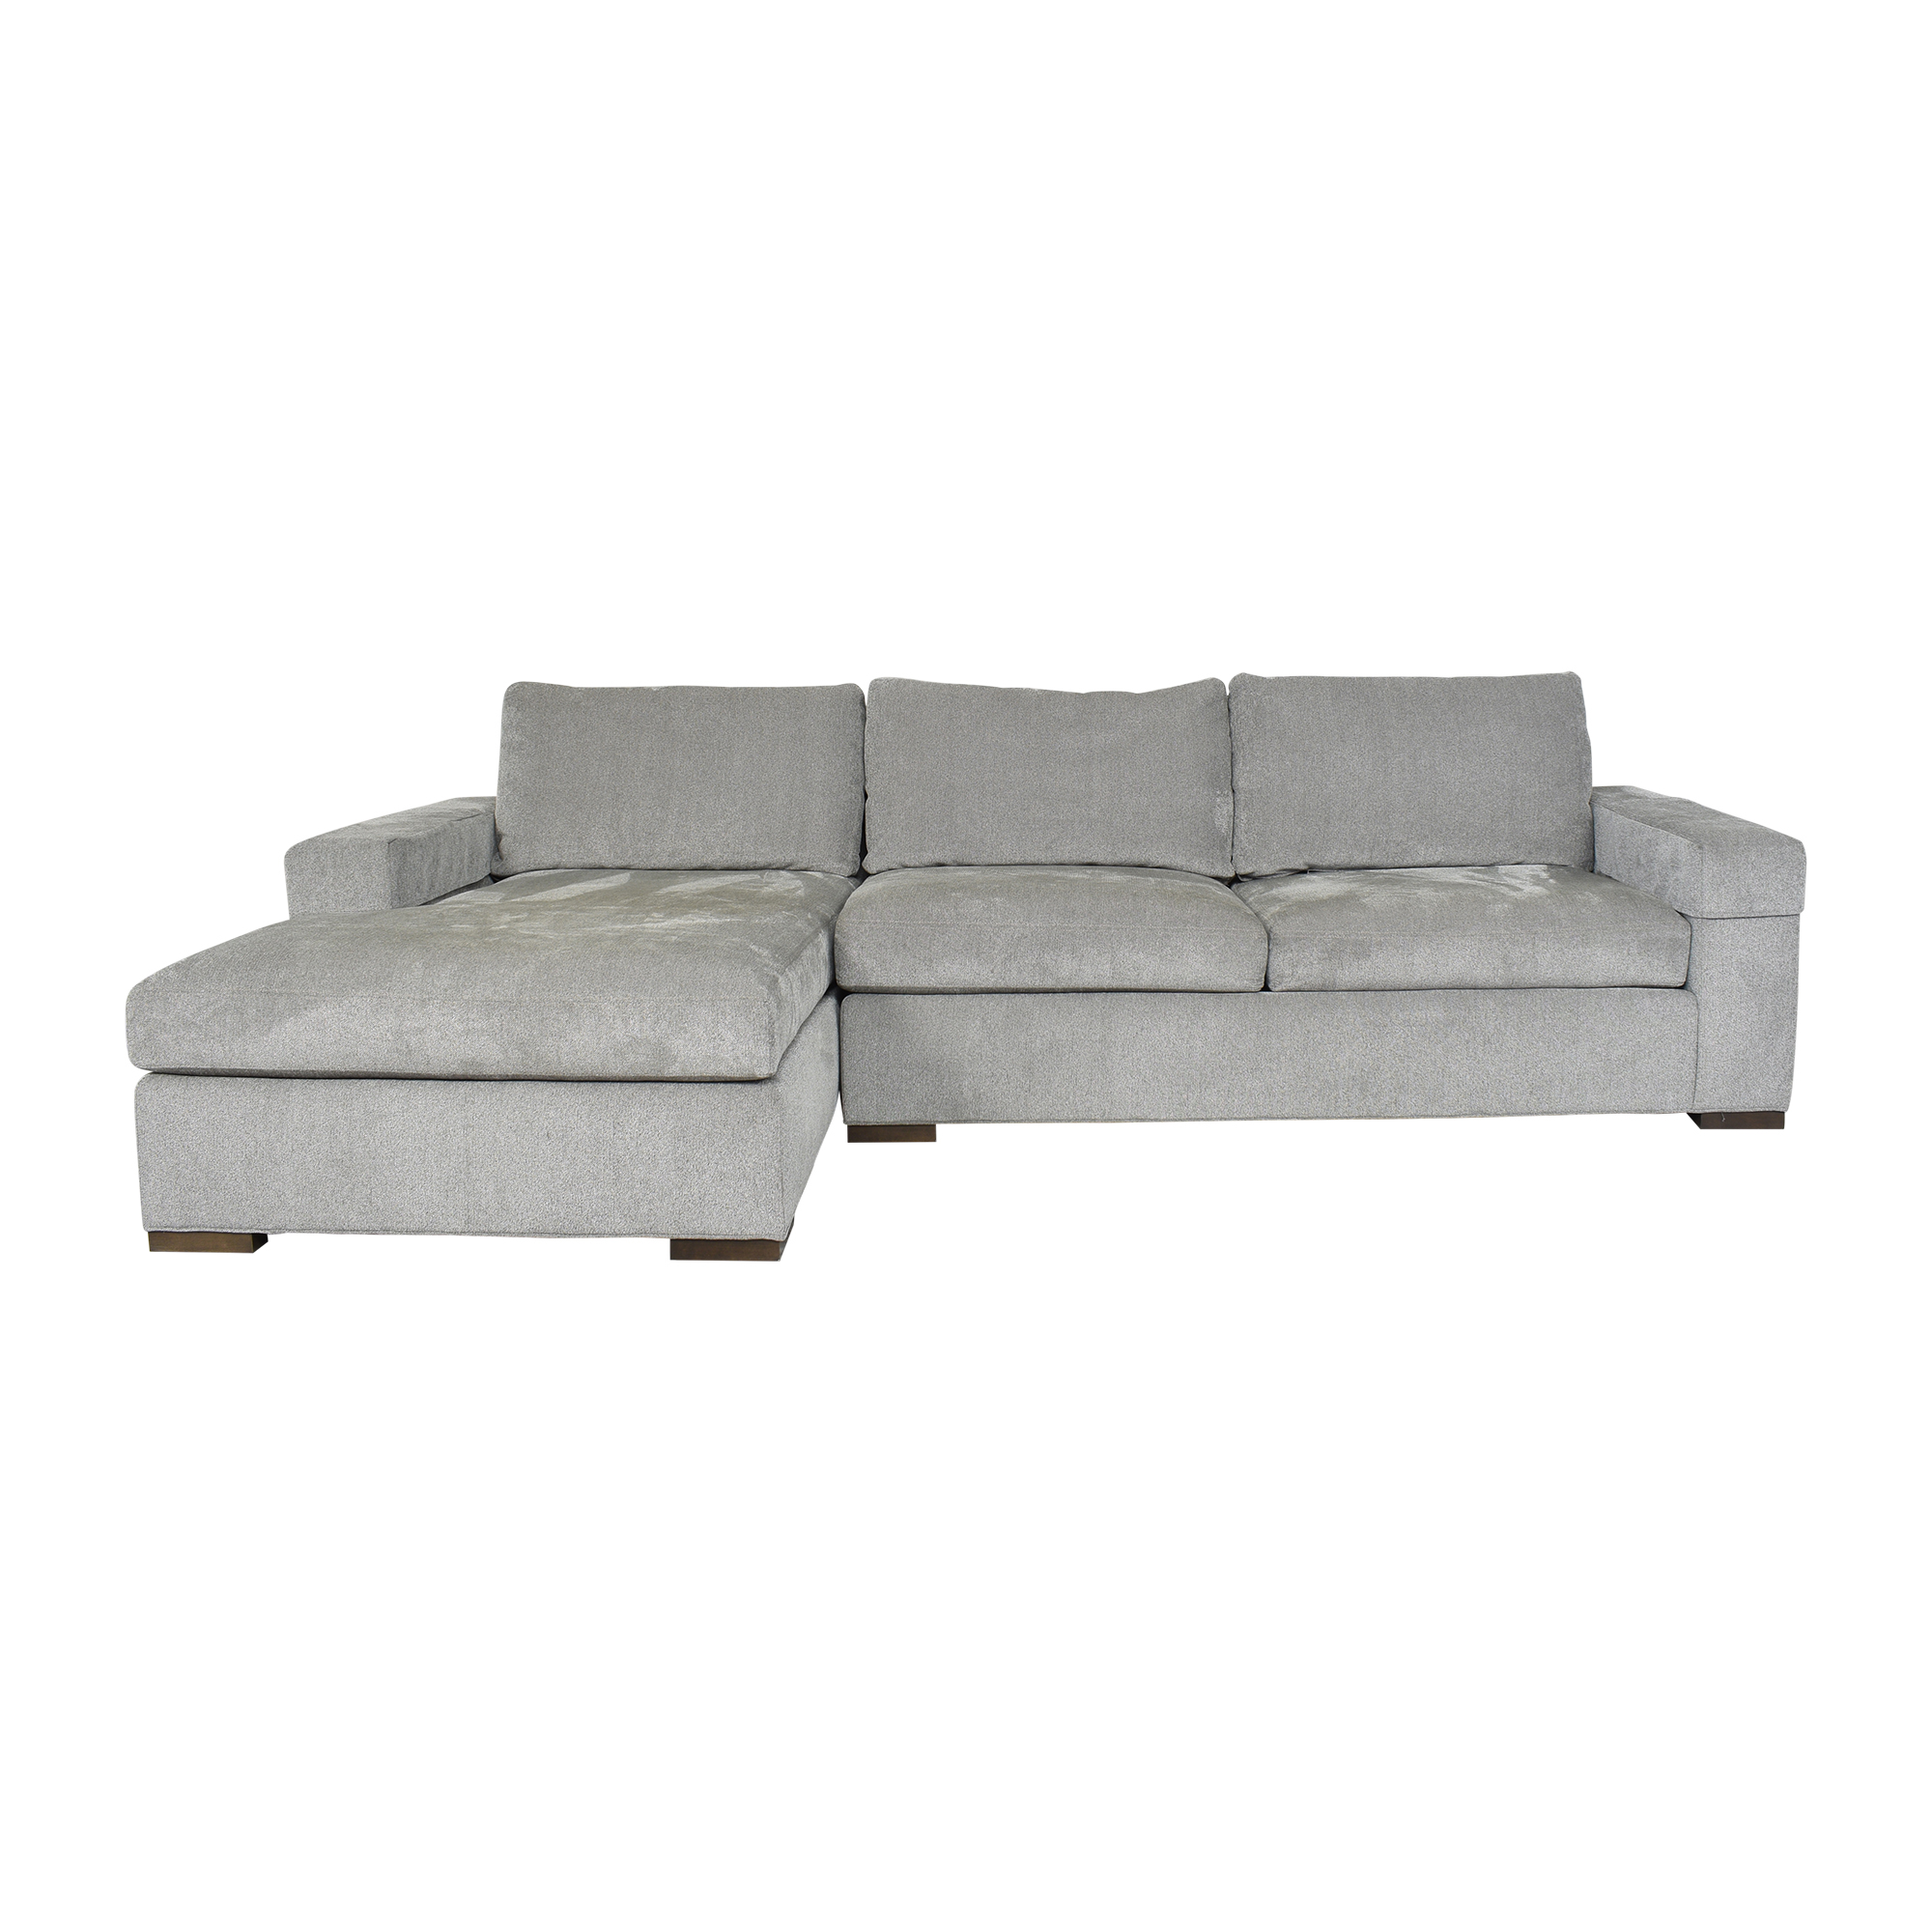 shop Ethan Allen Conway Two Piece Chaise Sectional Ethan Allen Sofas